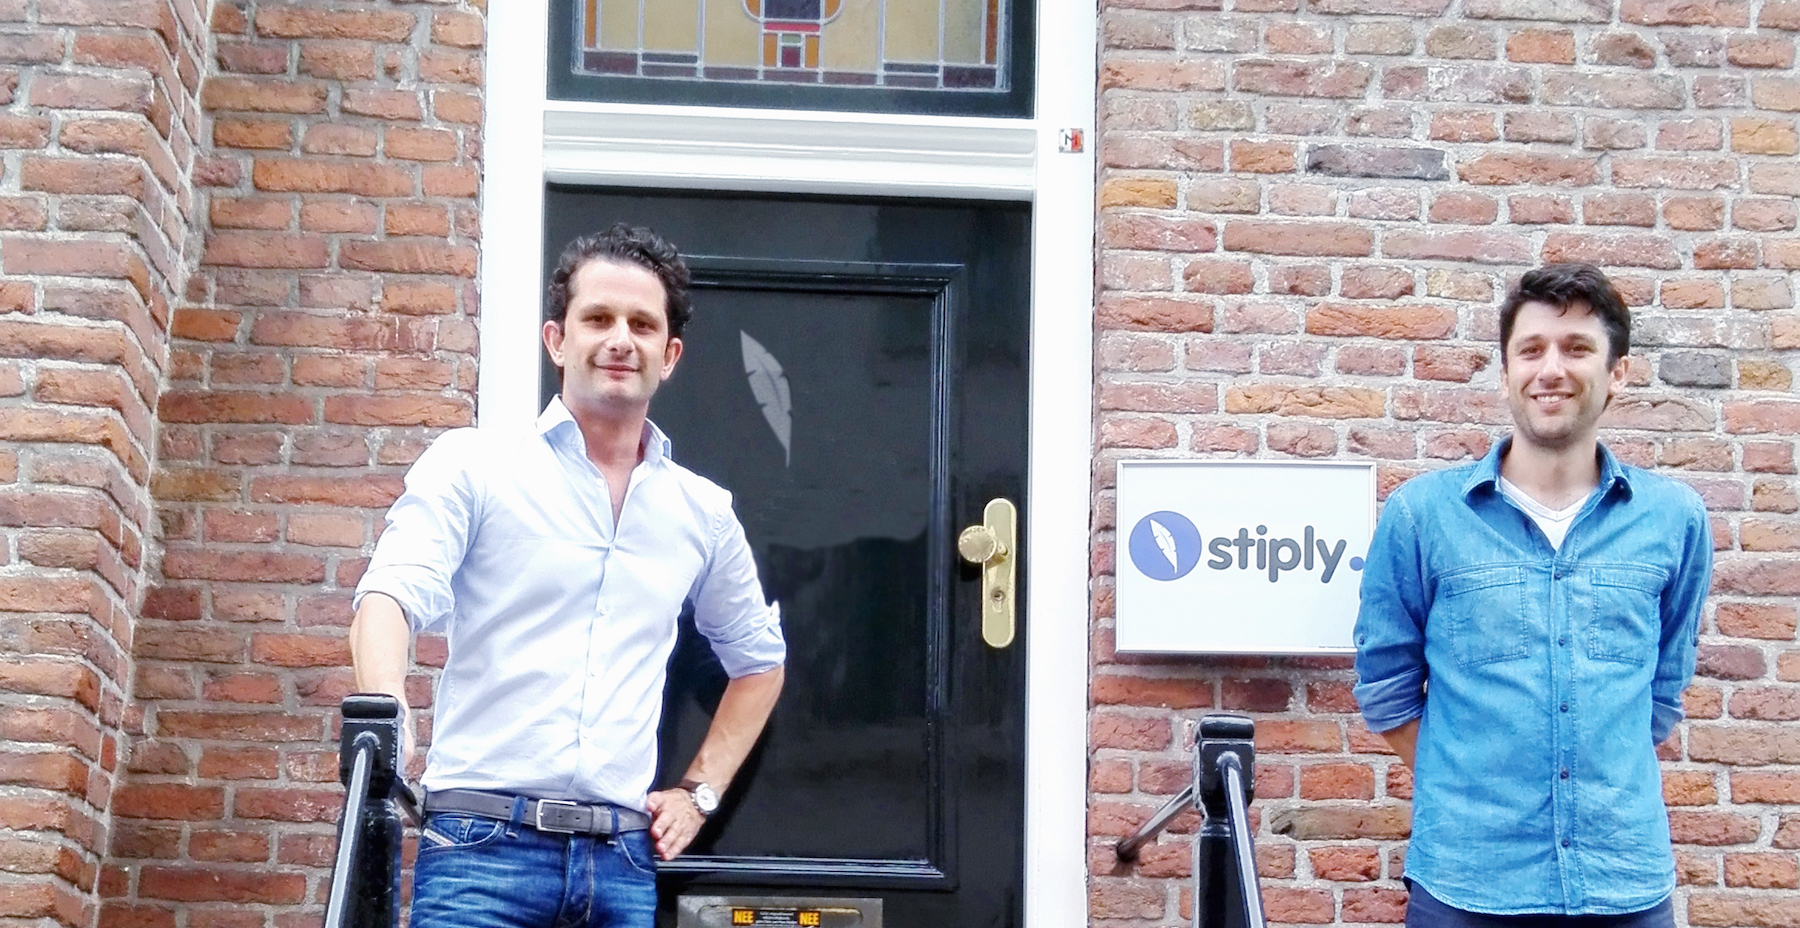 How Stiply hopes to eradicate paper documents and signatures